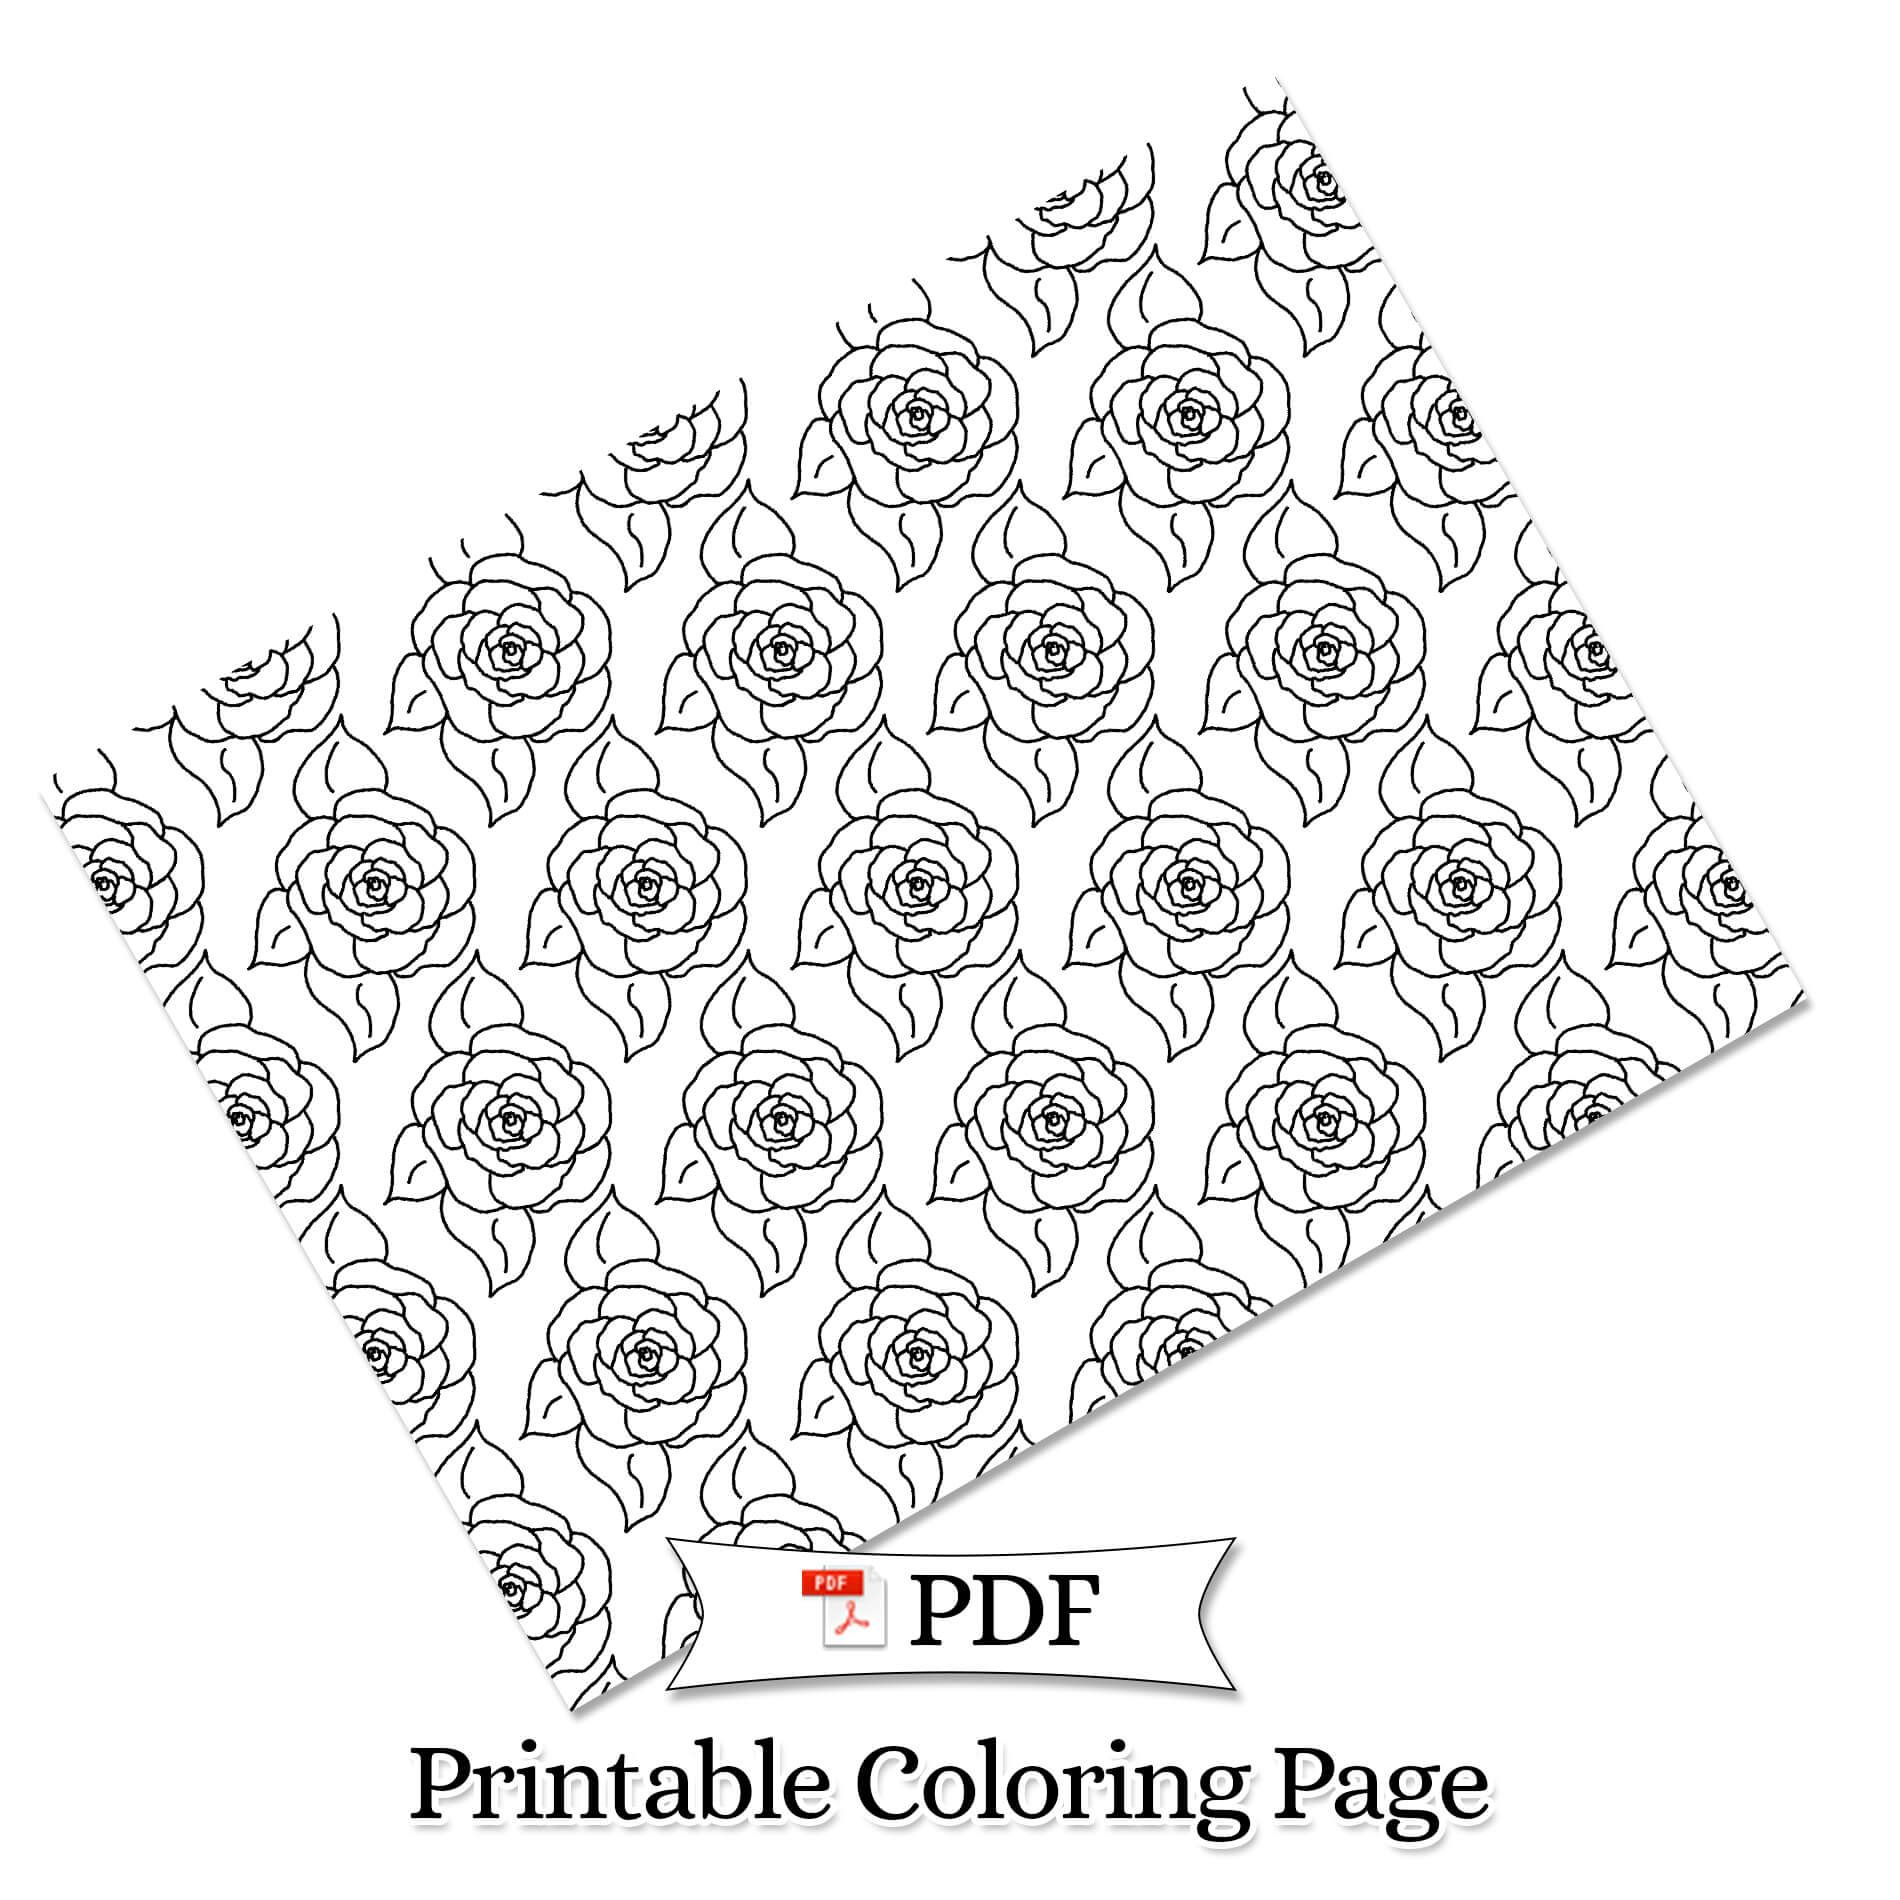 Petal Madness Printable Coloring Page #25 - Terry McClary   | Adult Coloring Page   | Coloring Printable | coloring pages